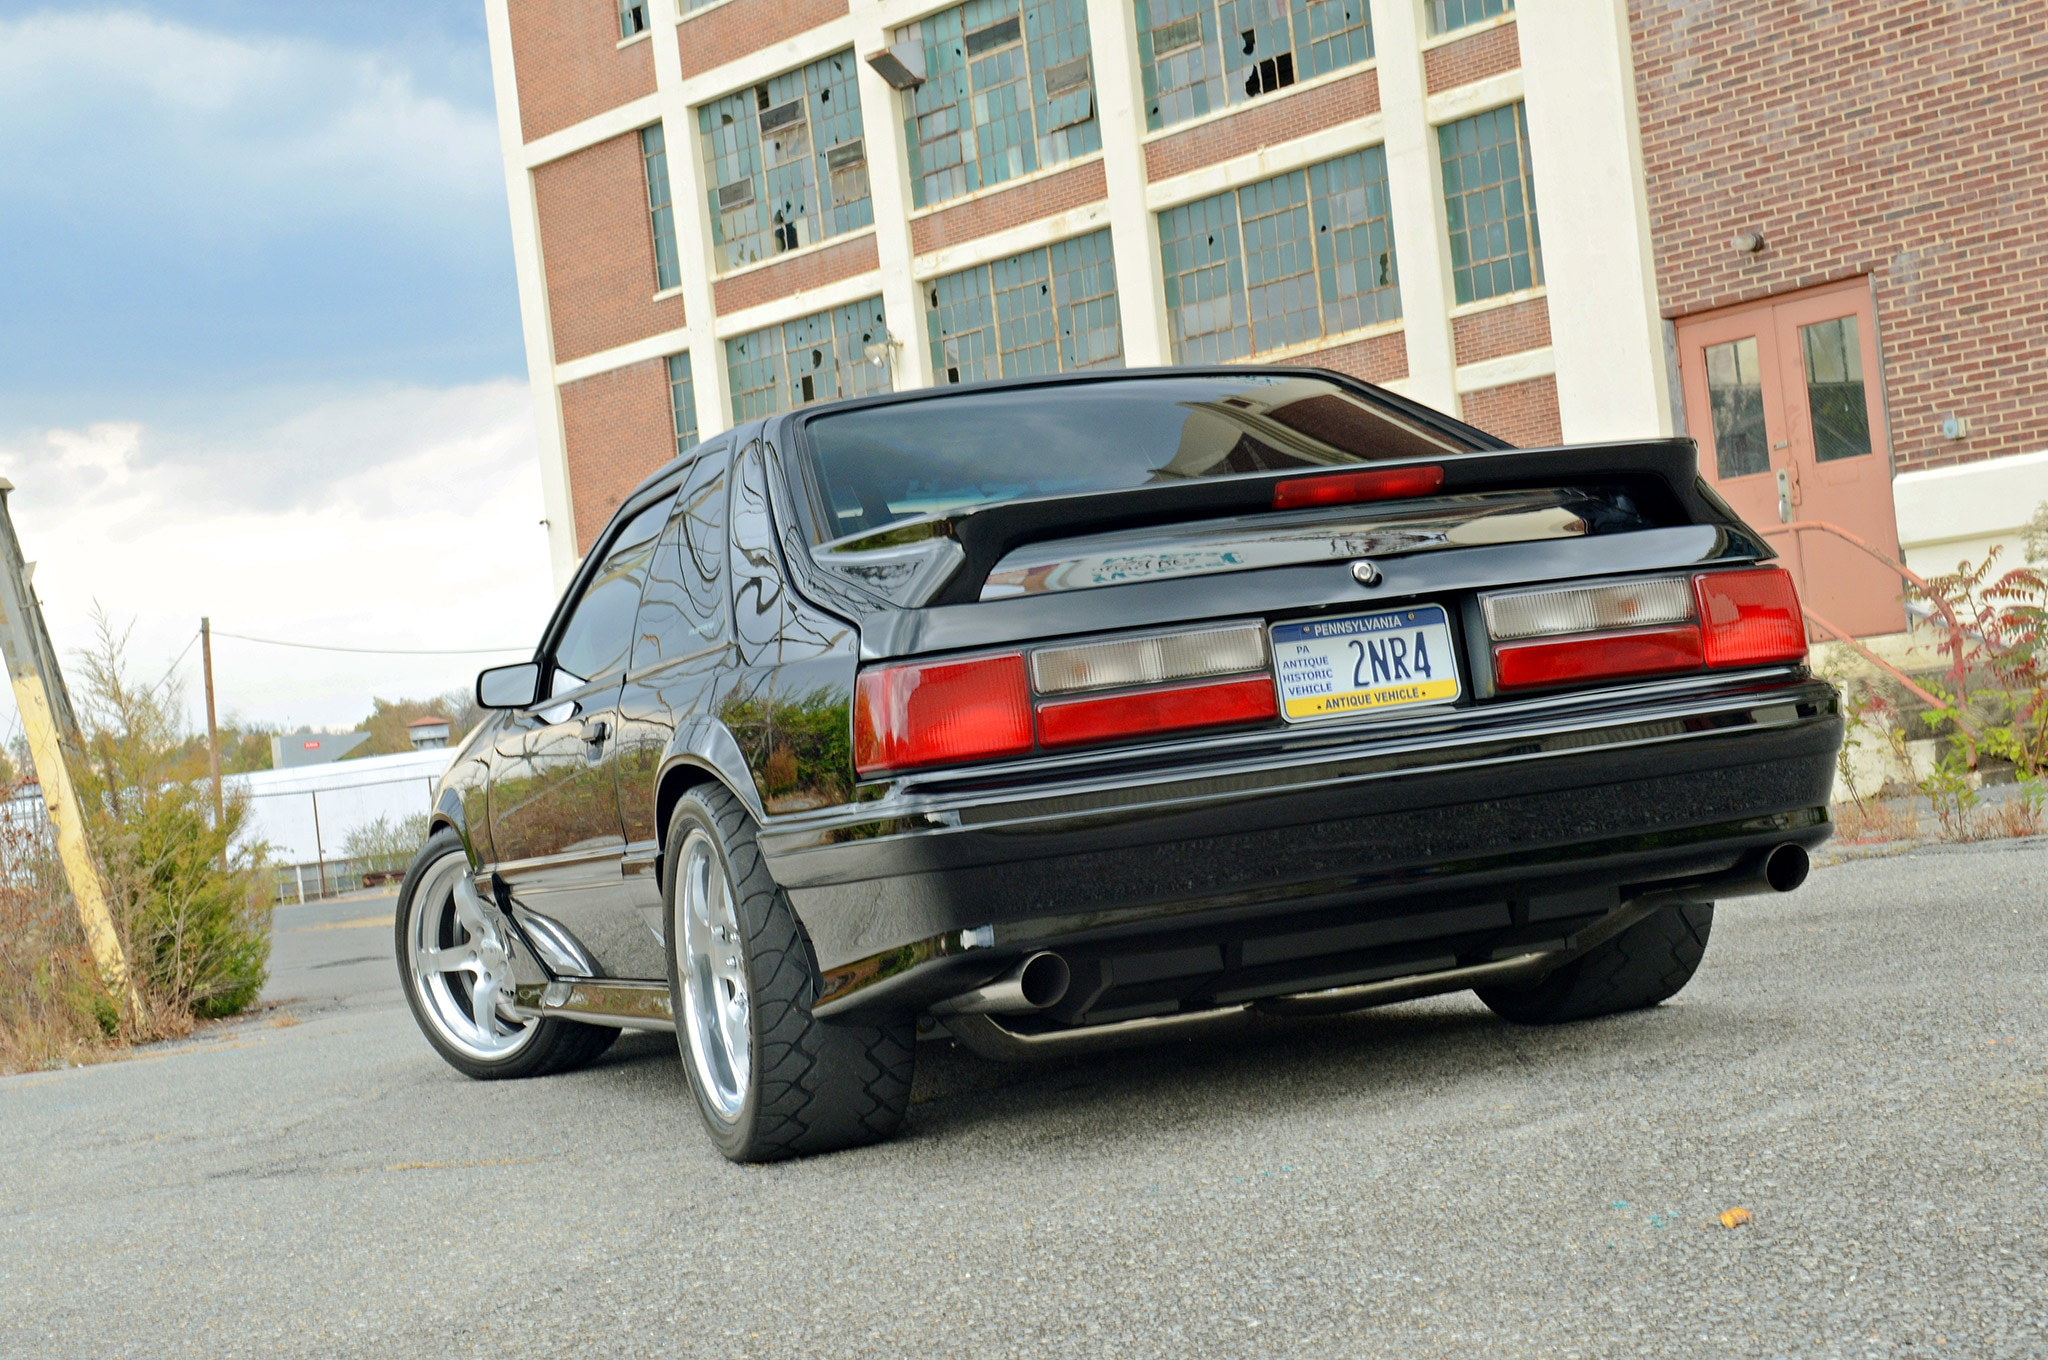 1988 Ford Mustang Gt Hartrick 88 Lowrear